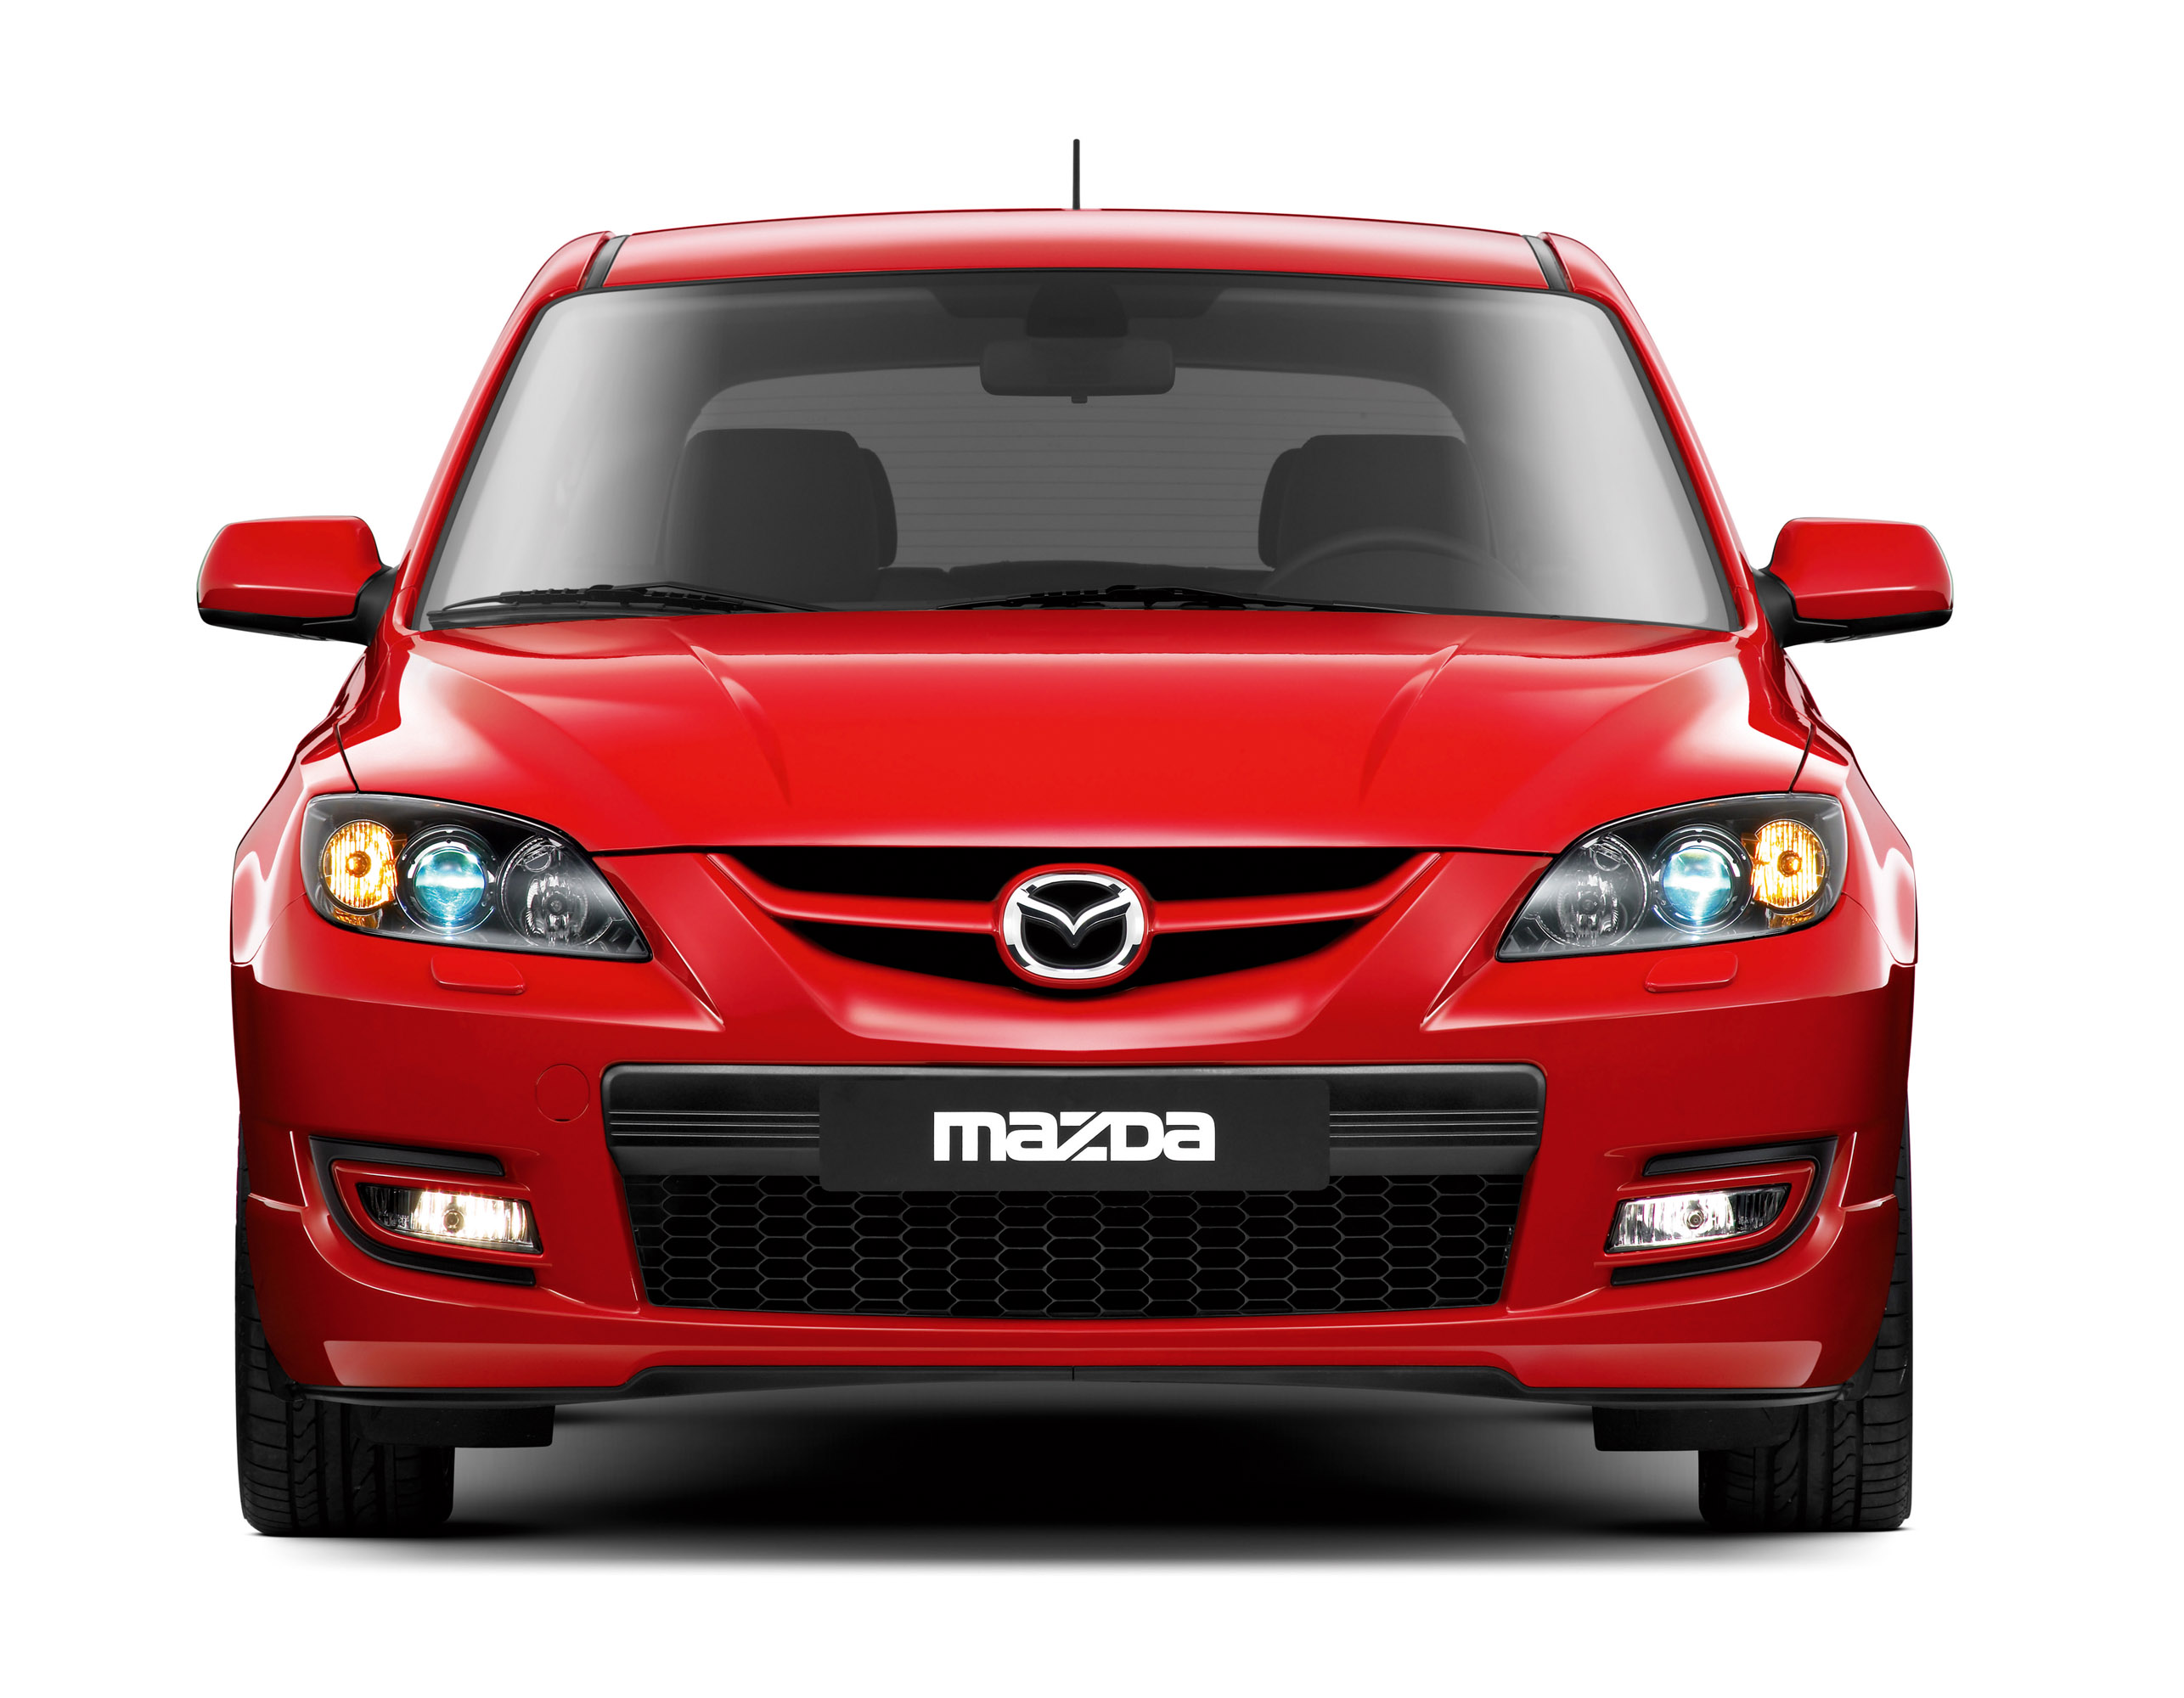 2006 mazda 3 mps - hd pictures @ carsinvasion